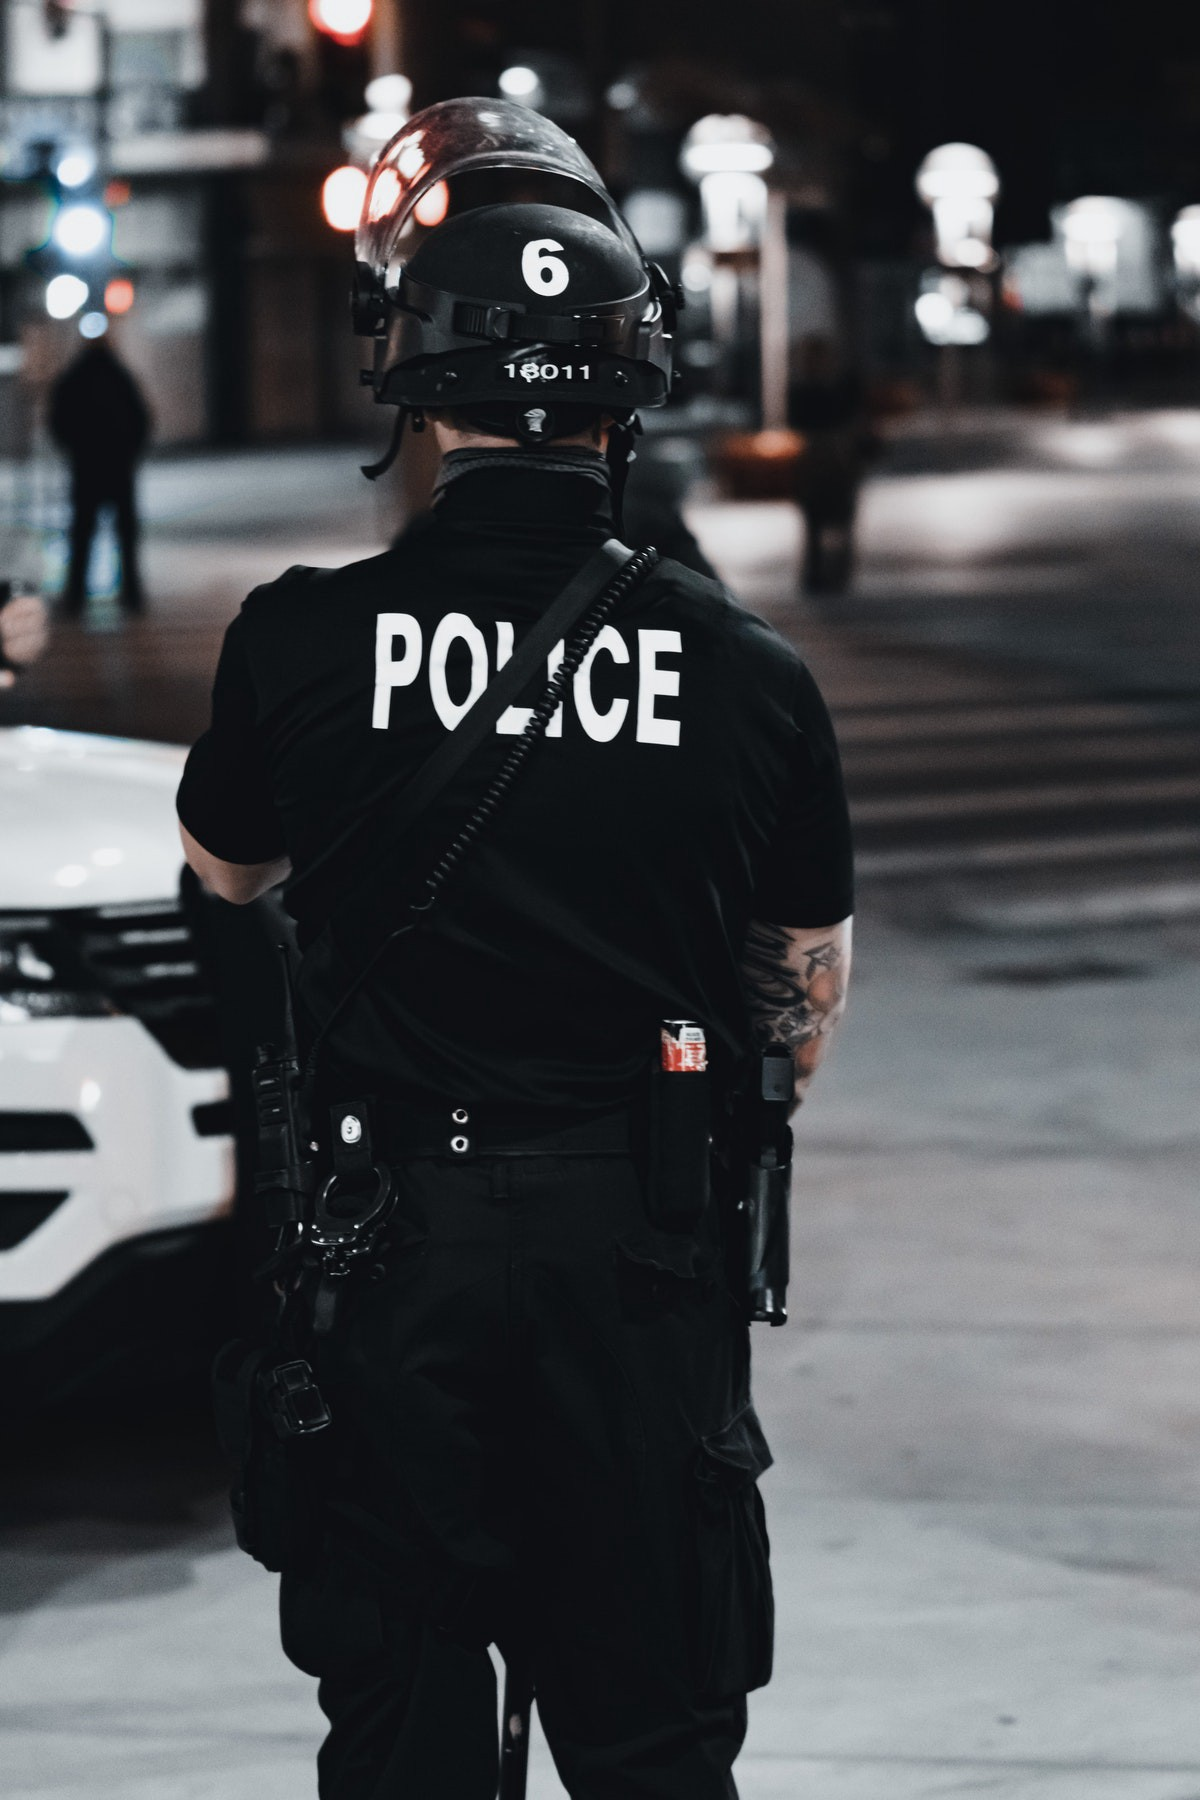 policeman facing away from the camera on a city street in the evening